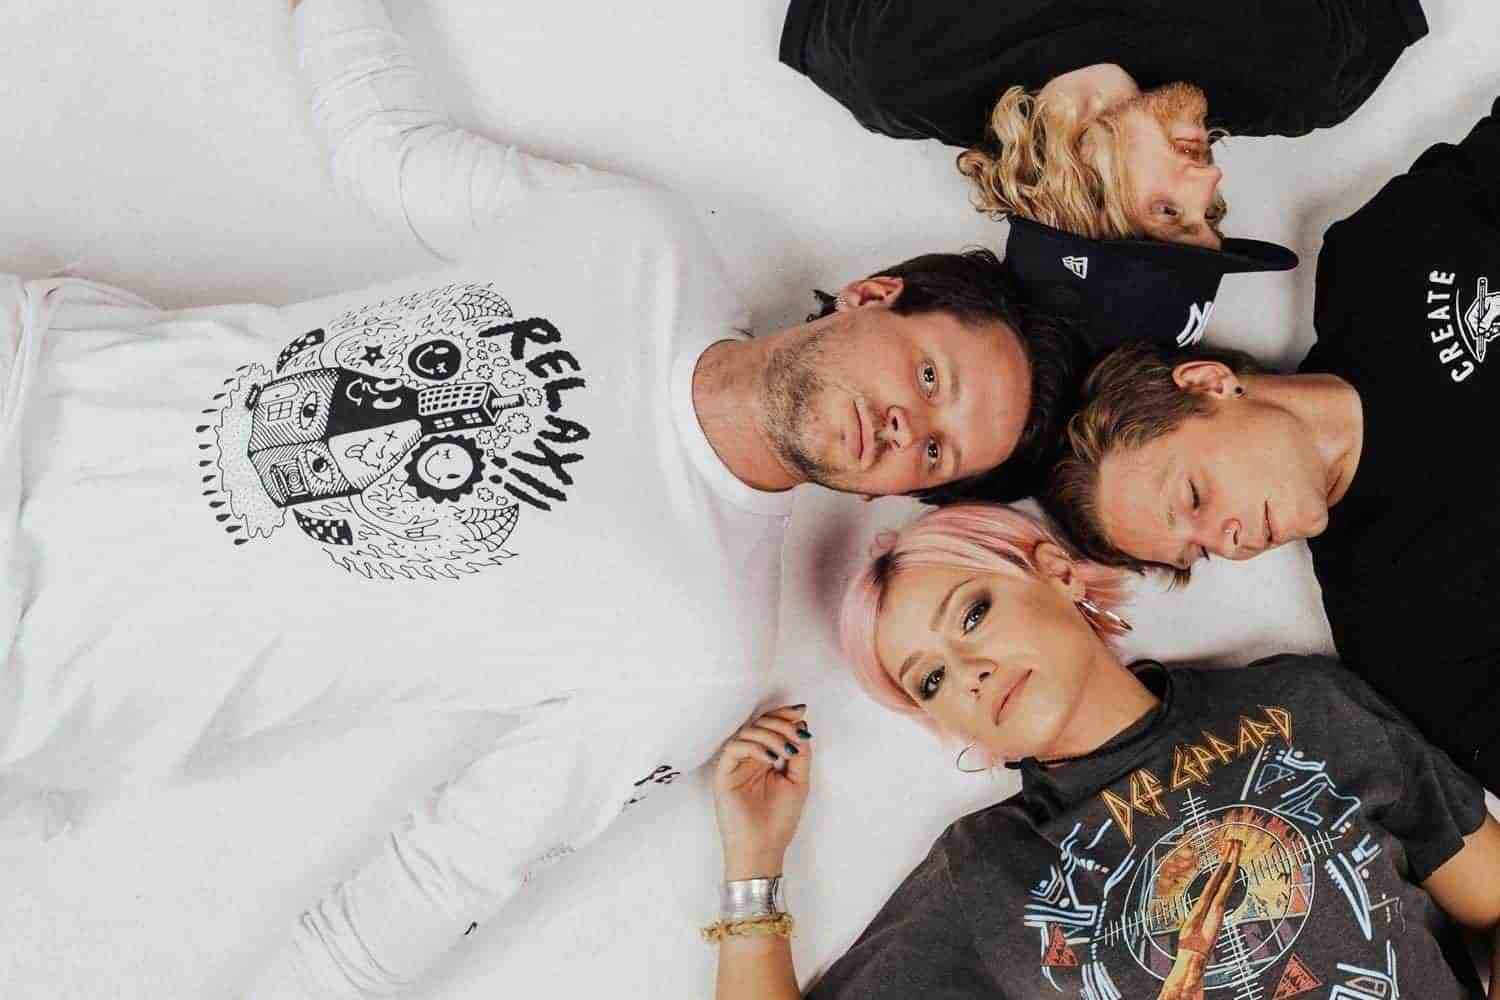 Tonight Alive: In The Shadows